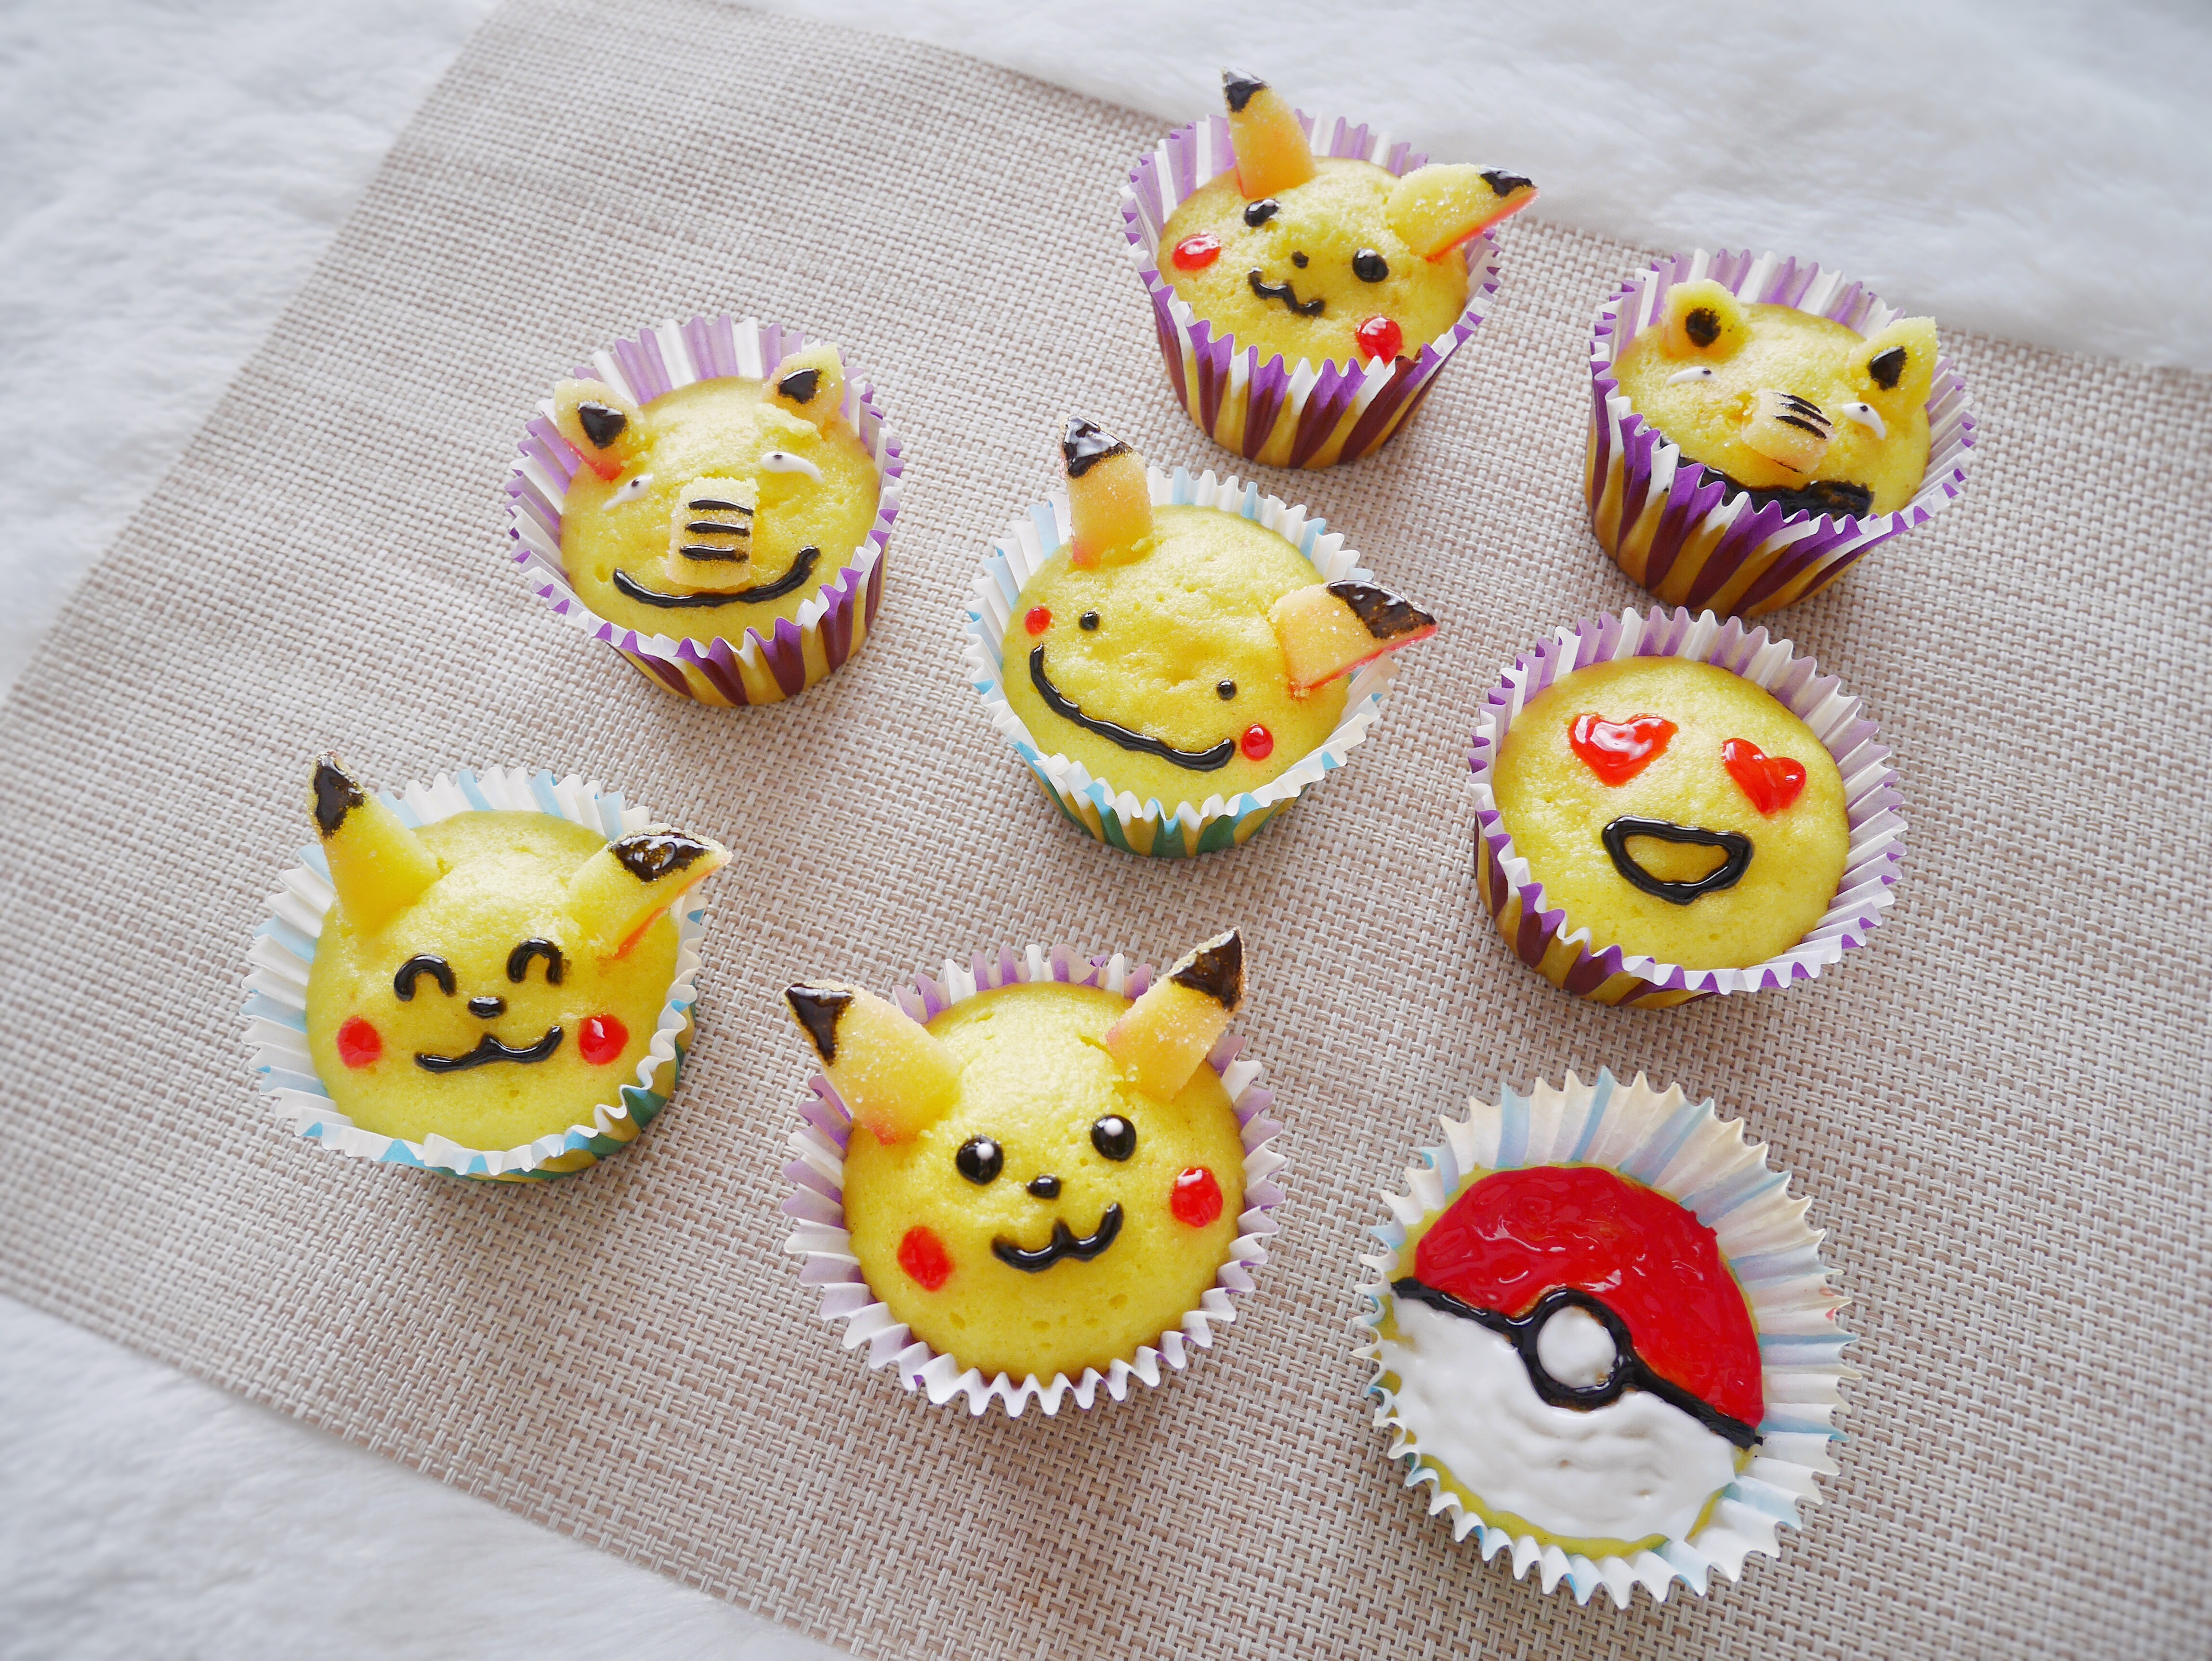 How To Make A Pokemon Birthday Cake